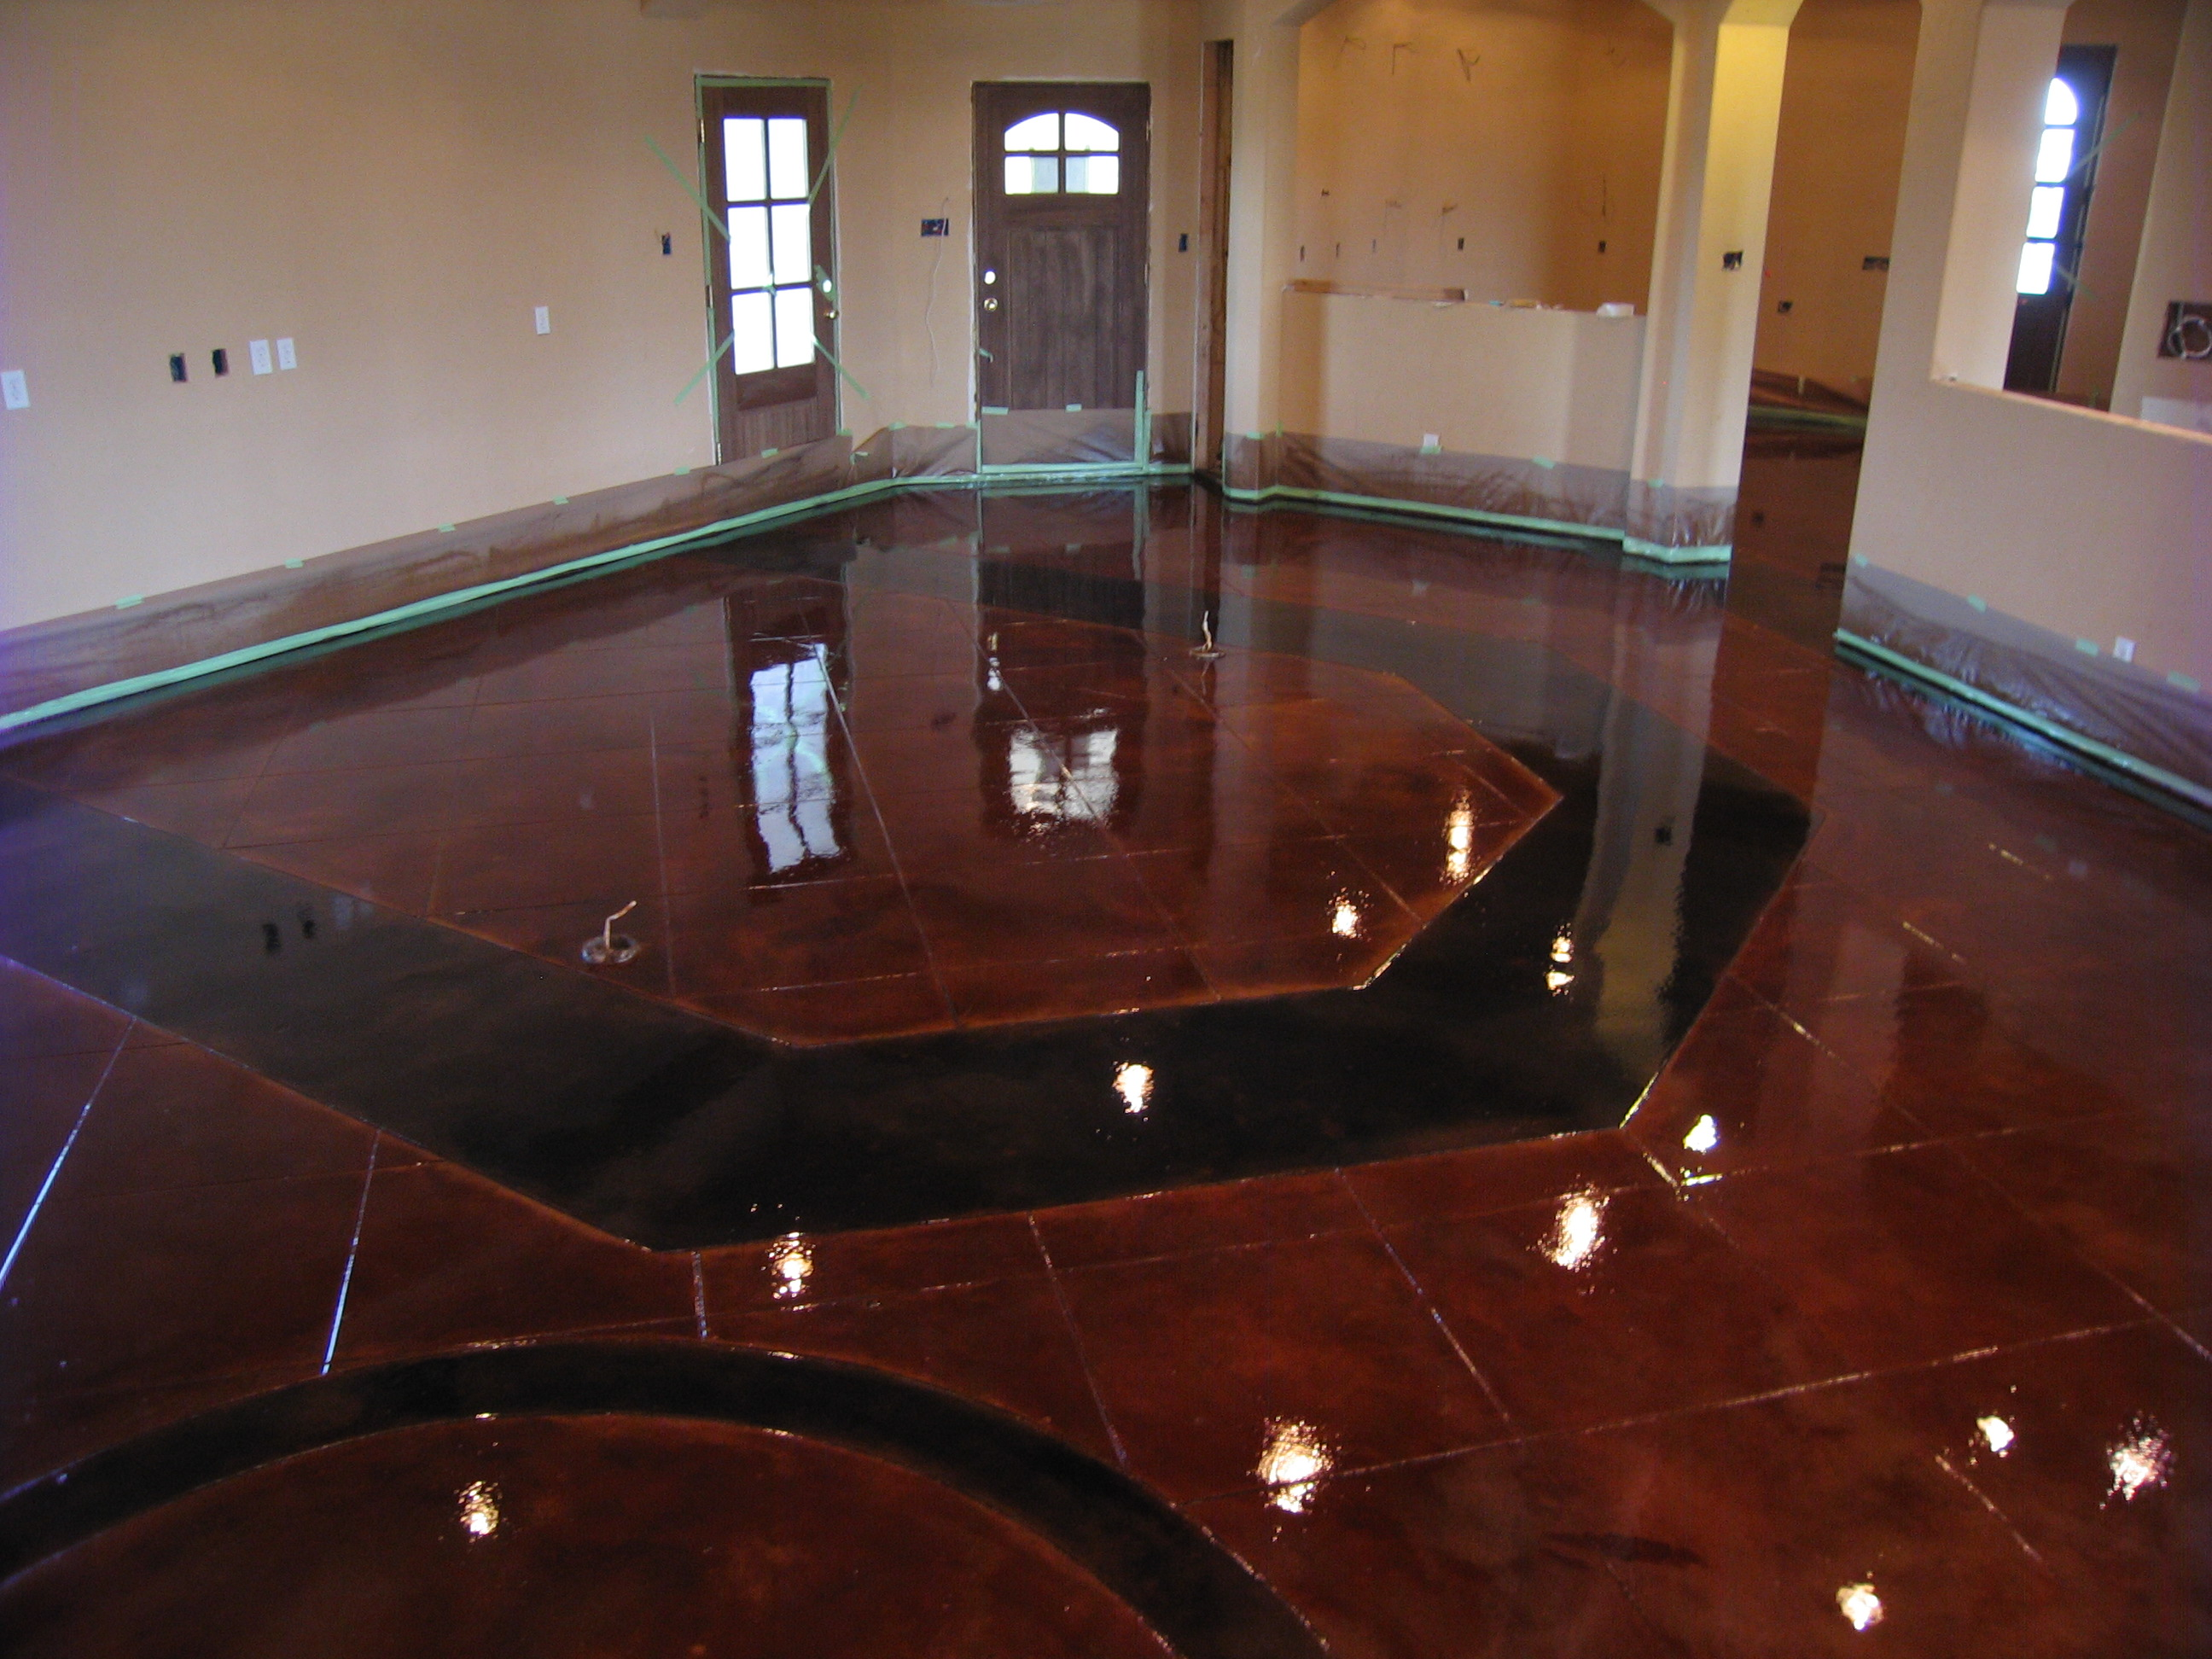 Genial Stamped Concrete, Acid Stain, Polished Concrete Dallas/Fort Worth